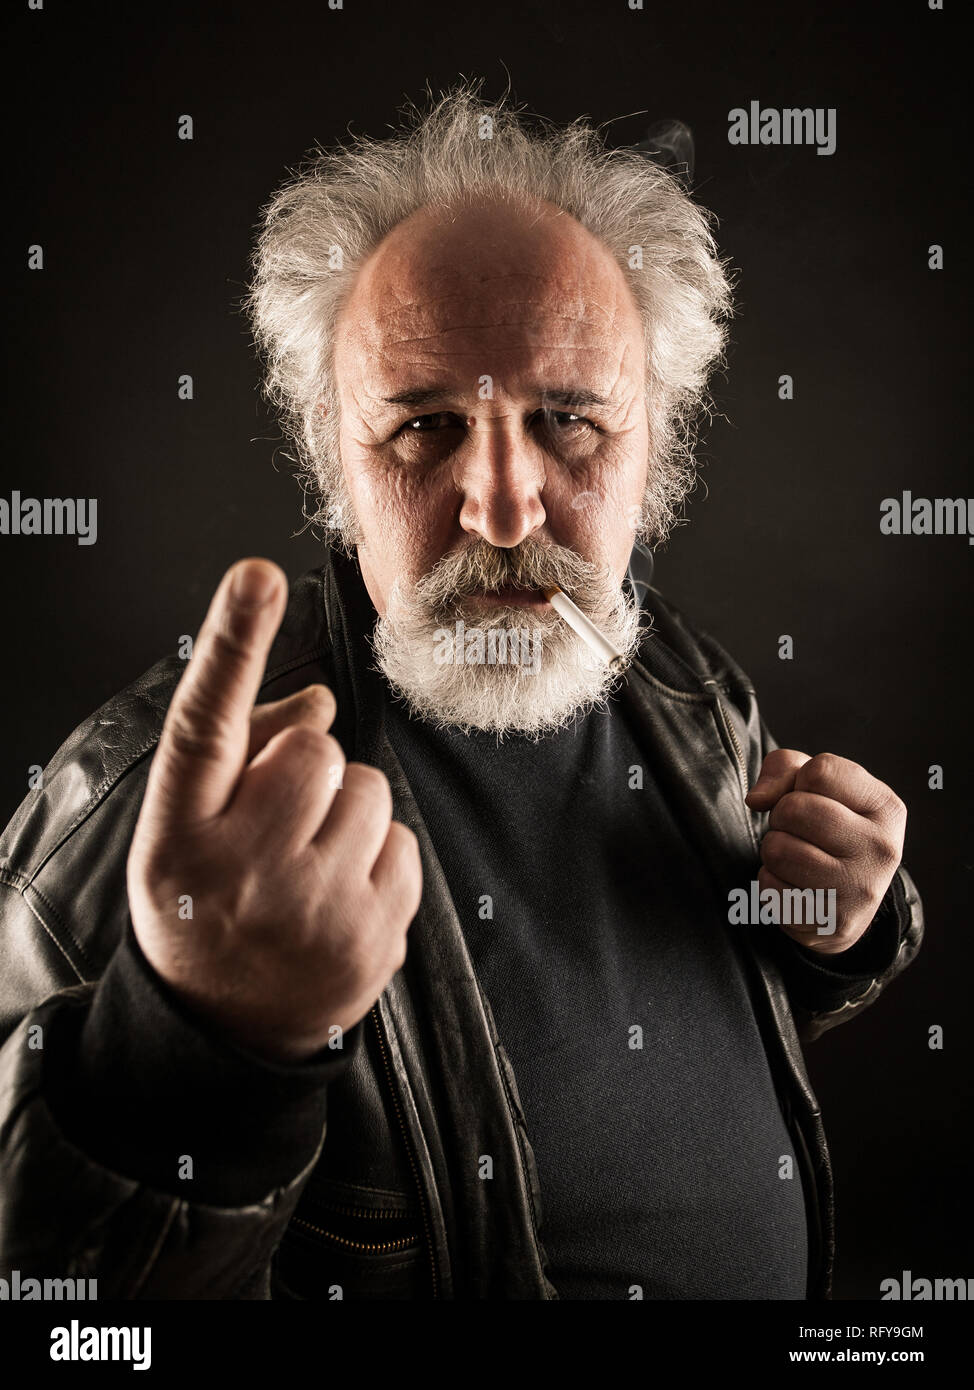 Grumpy man with cigarette against black background - Stock Image